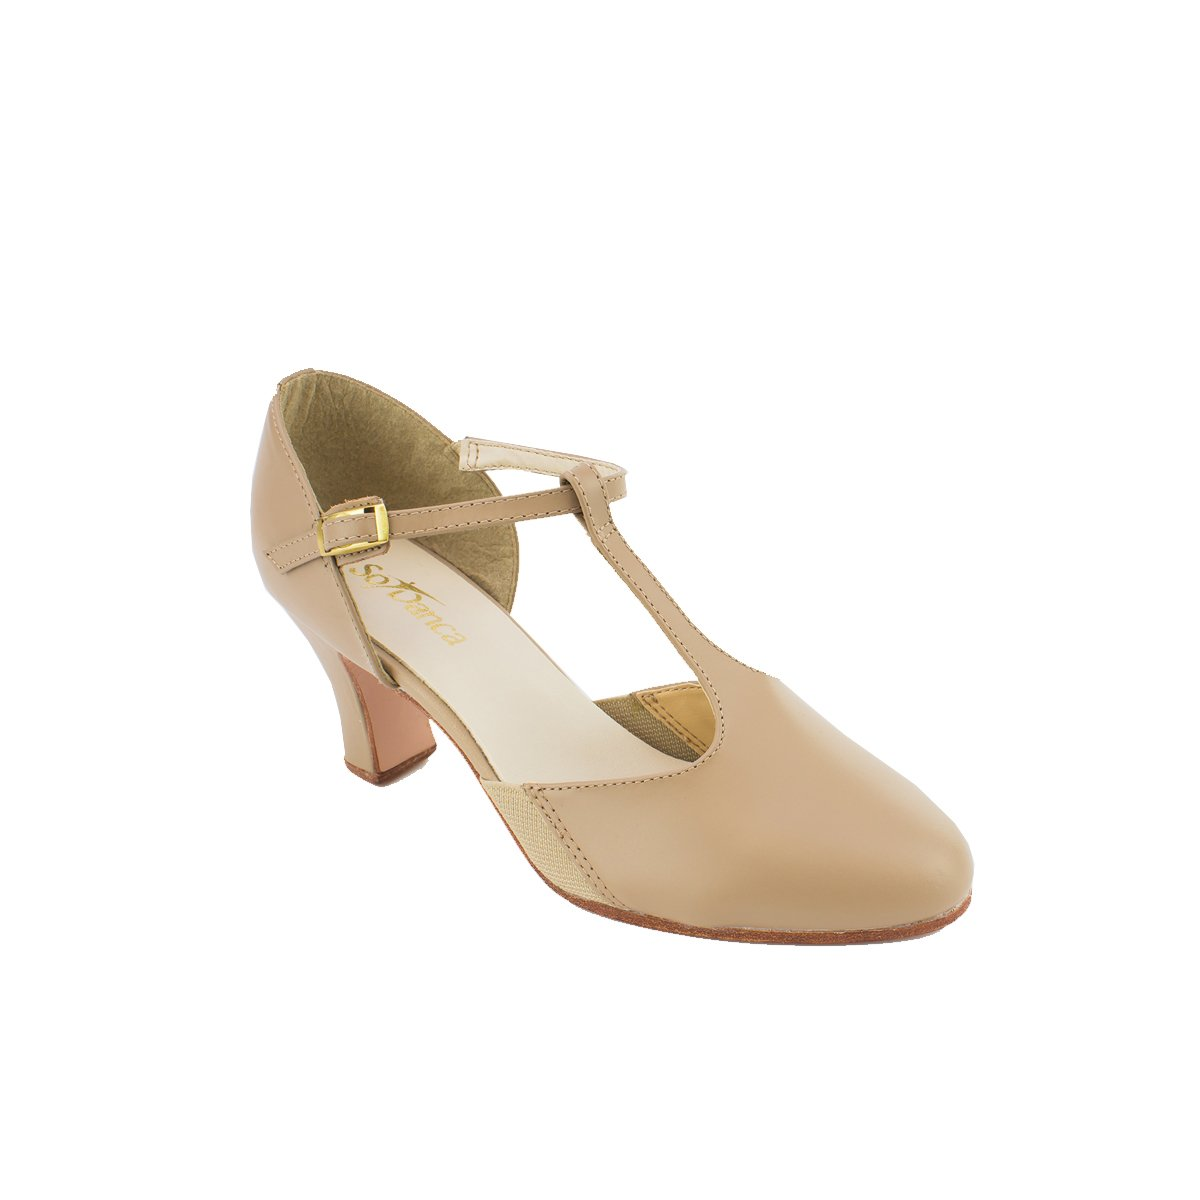 Sodanca Ch-56 Clarice 2.5 Heel All Leather T Strap Character Shoe